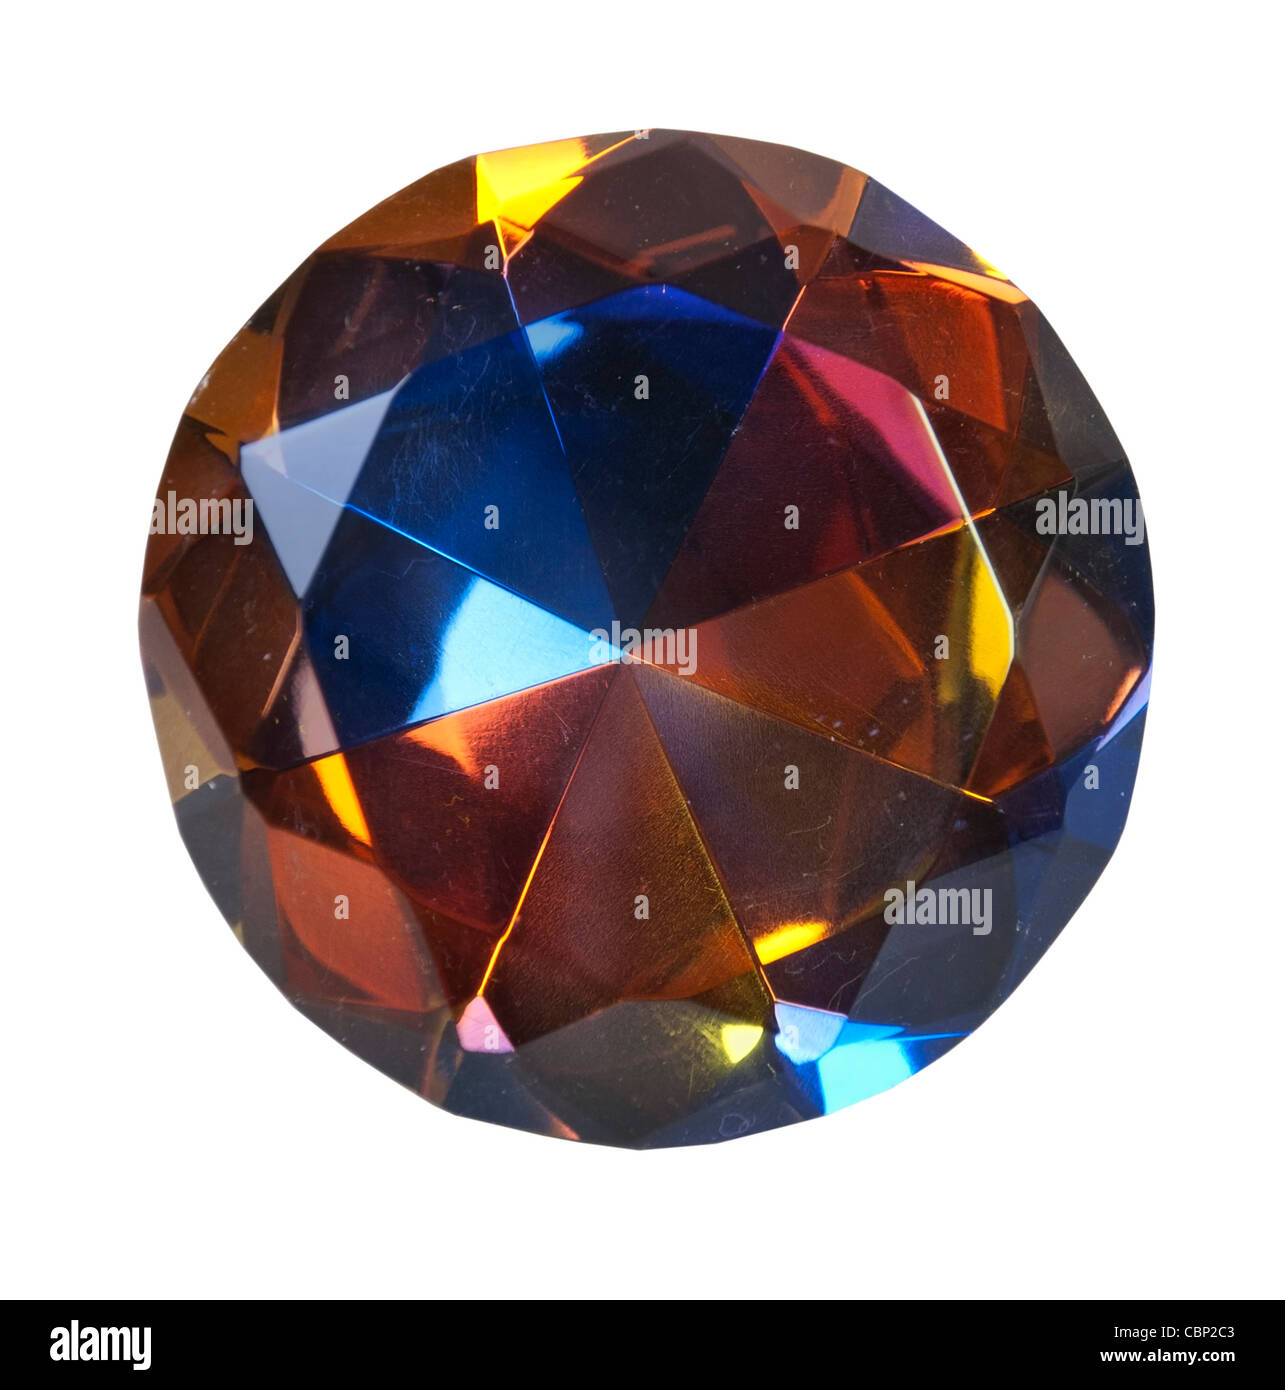 Large multiple color gem with bright facets - path included - Stock Image